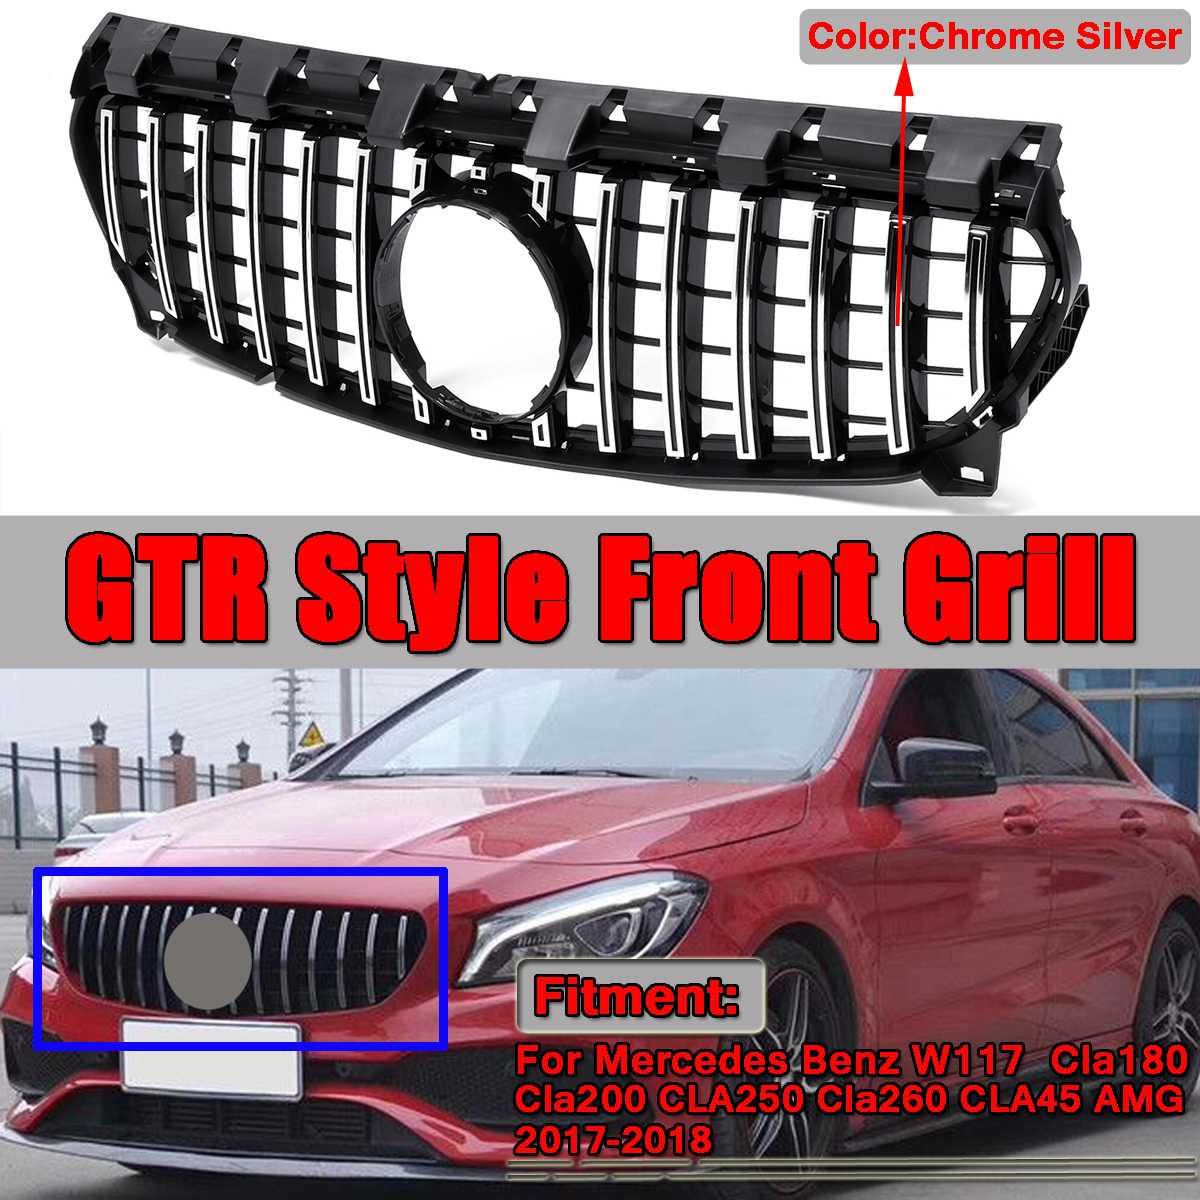 GT GTR Grill Car Front Grille Grill For Mercedes For Benz W117 CLA180 CLA200 <font><b>CLA250</b></font> CLA260 CLA45 For AMG 2013-2016/2017-2018 image